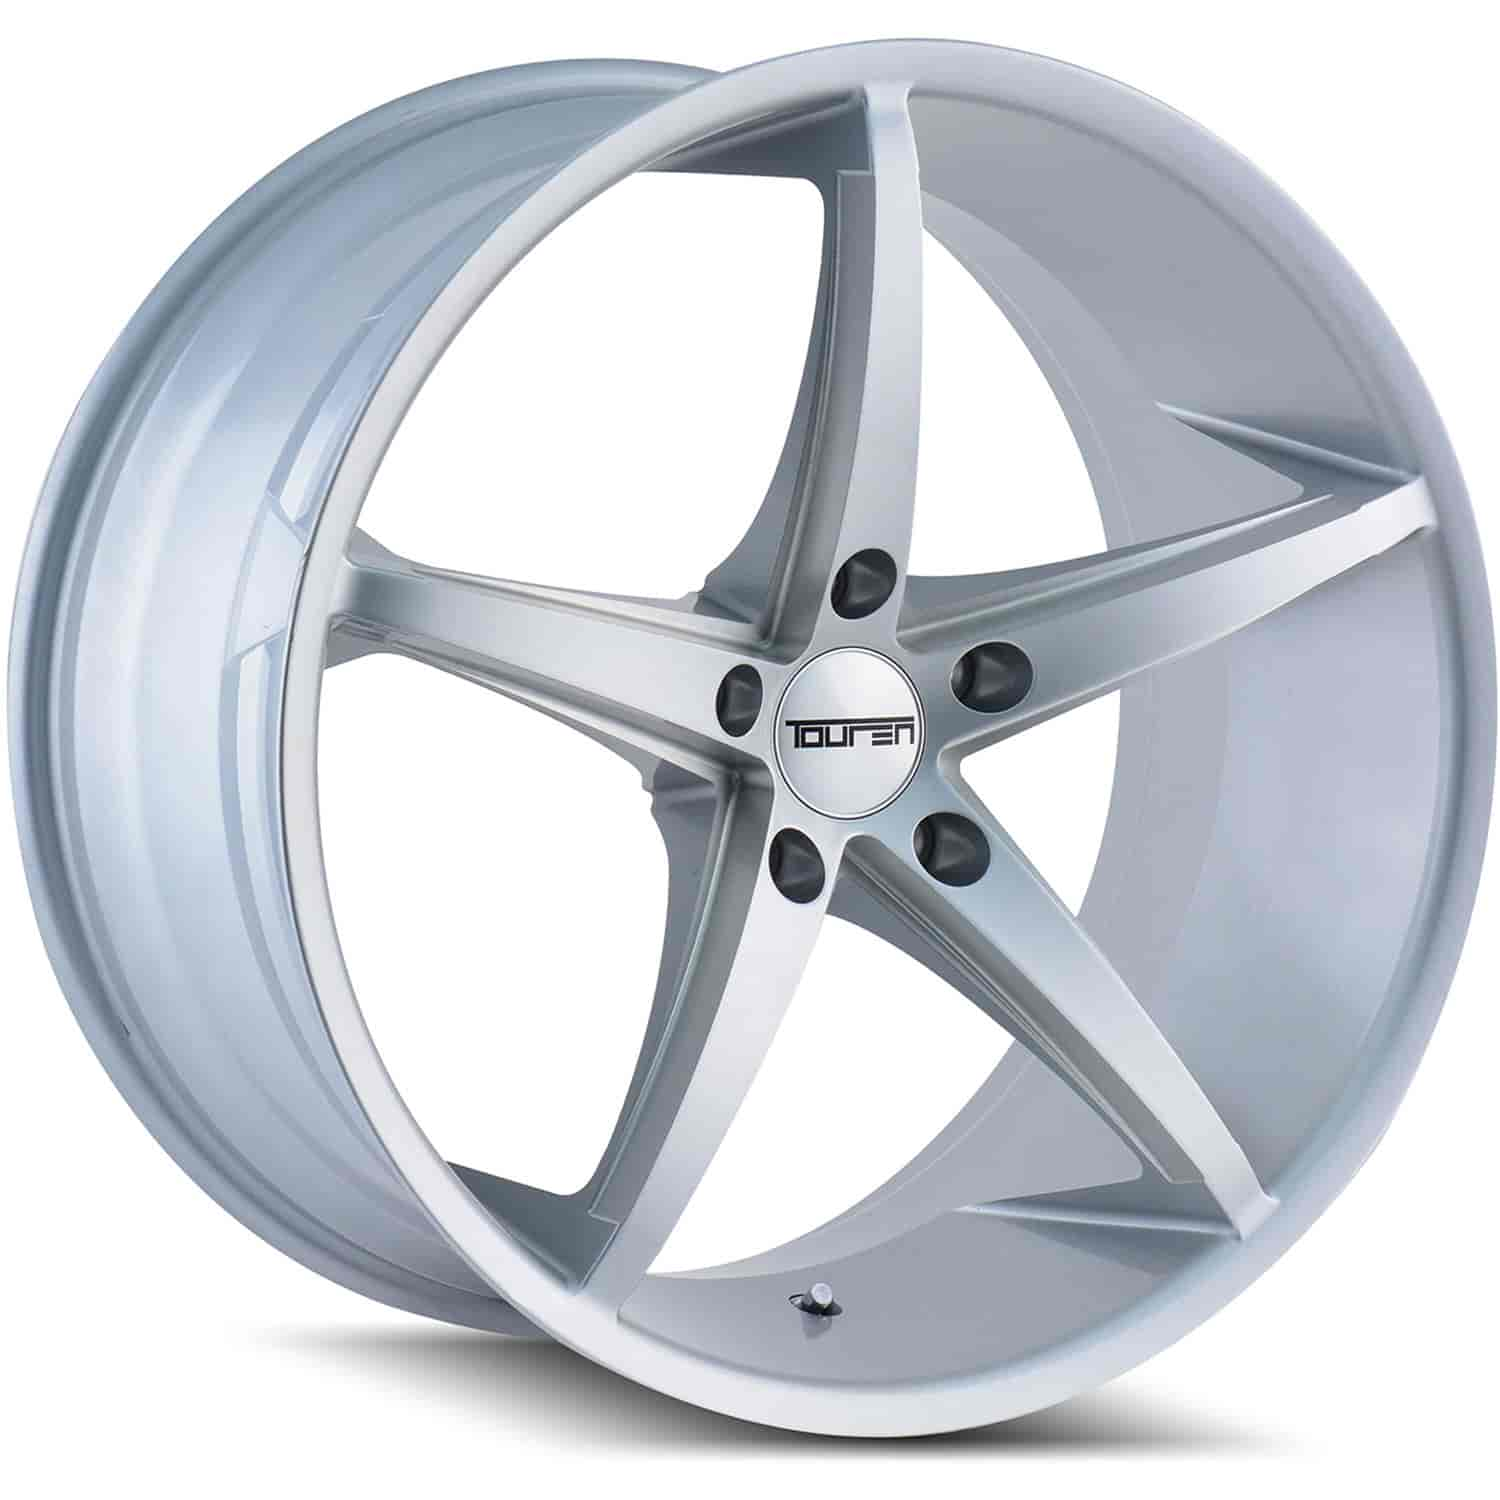 The Wheel Group 3270-8812S20